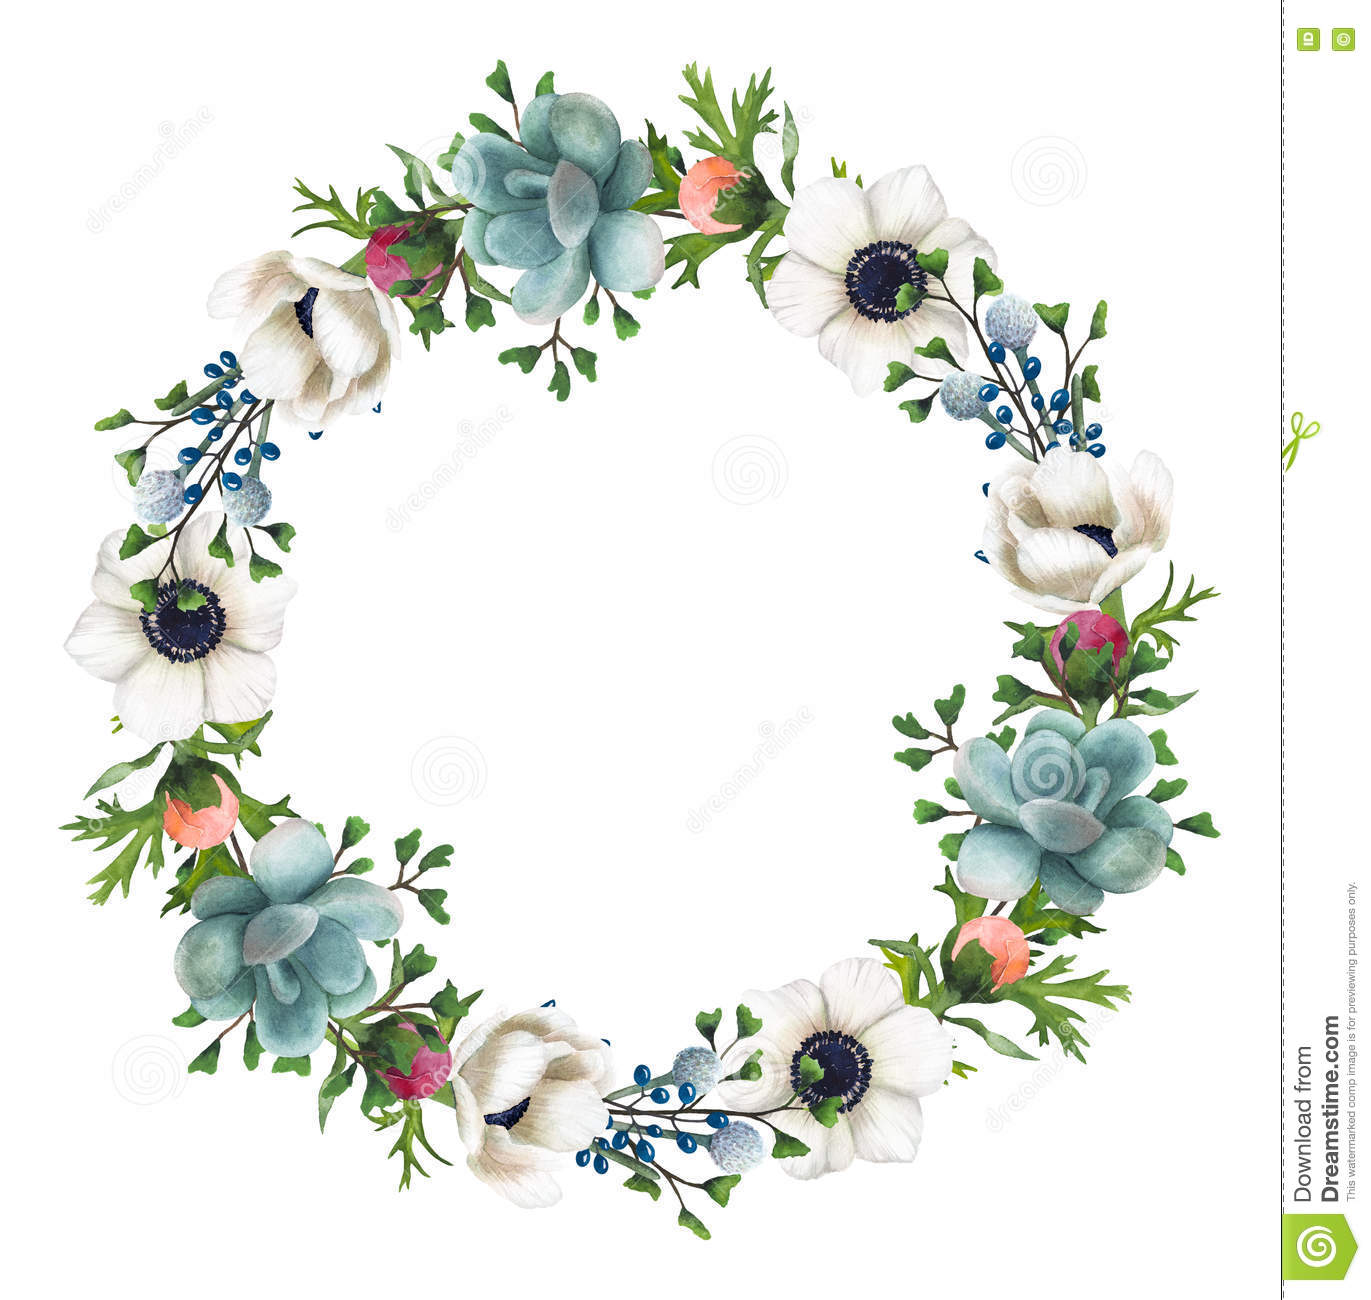 Hand Painted Watercolor Flowers And Succulents Wreath Stock Illustration Illustration Of Scrapbooks Posters 81493950